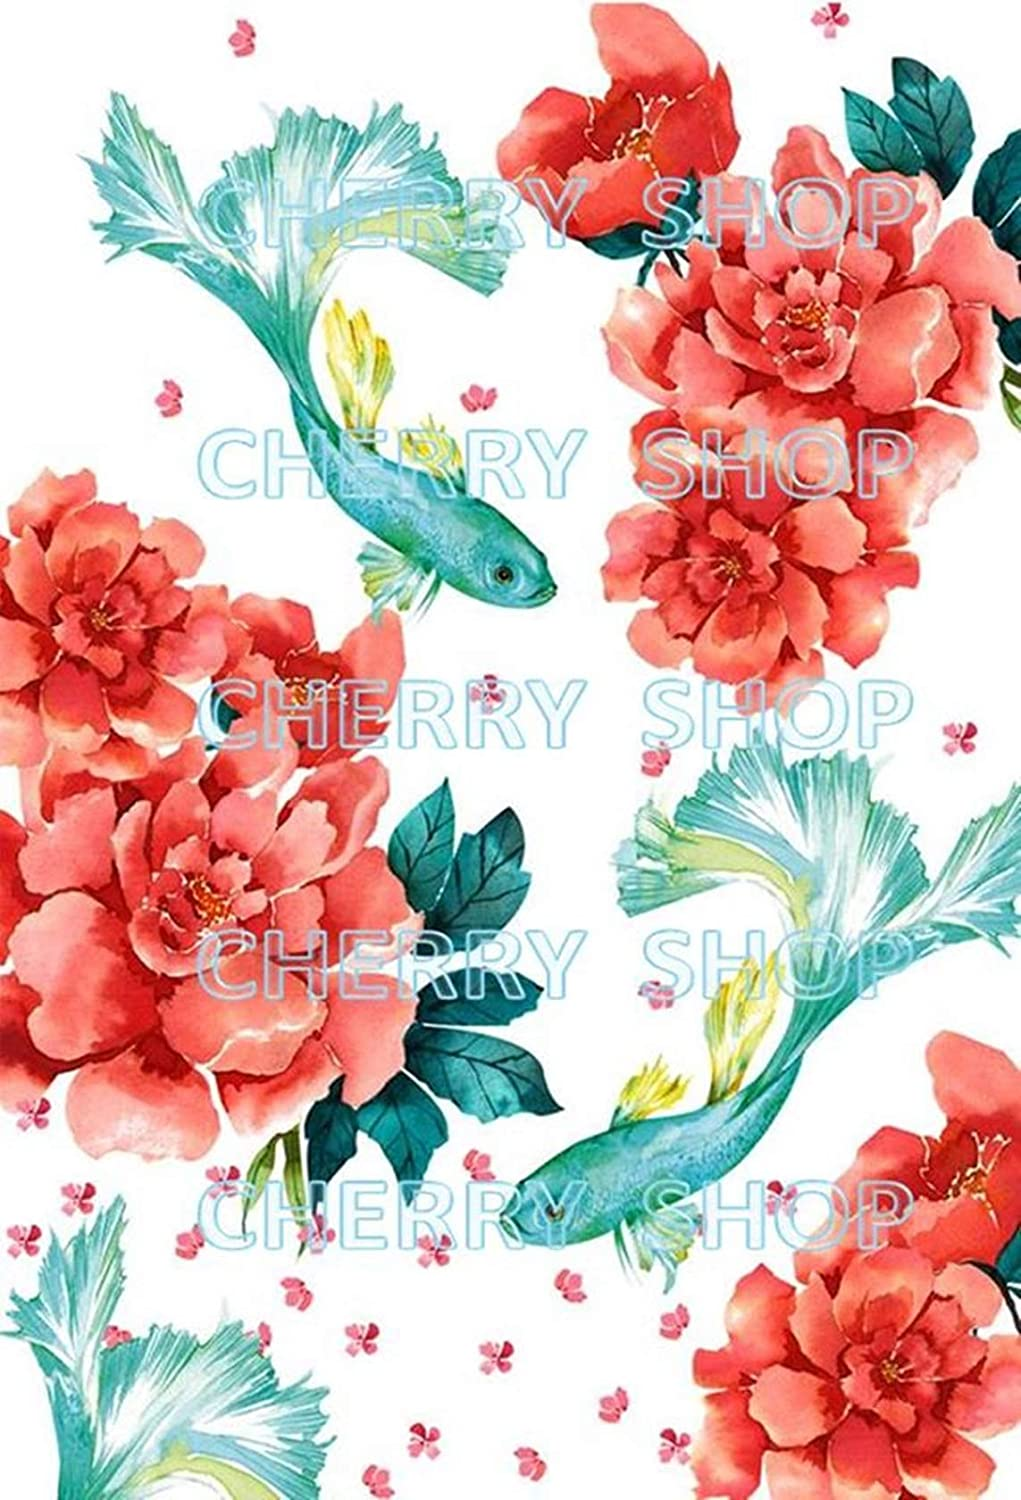 Paper for decoupage Vintage Style(A4 / 20x20 cm) Total 3 Sheets